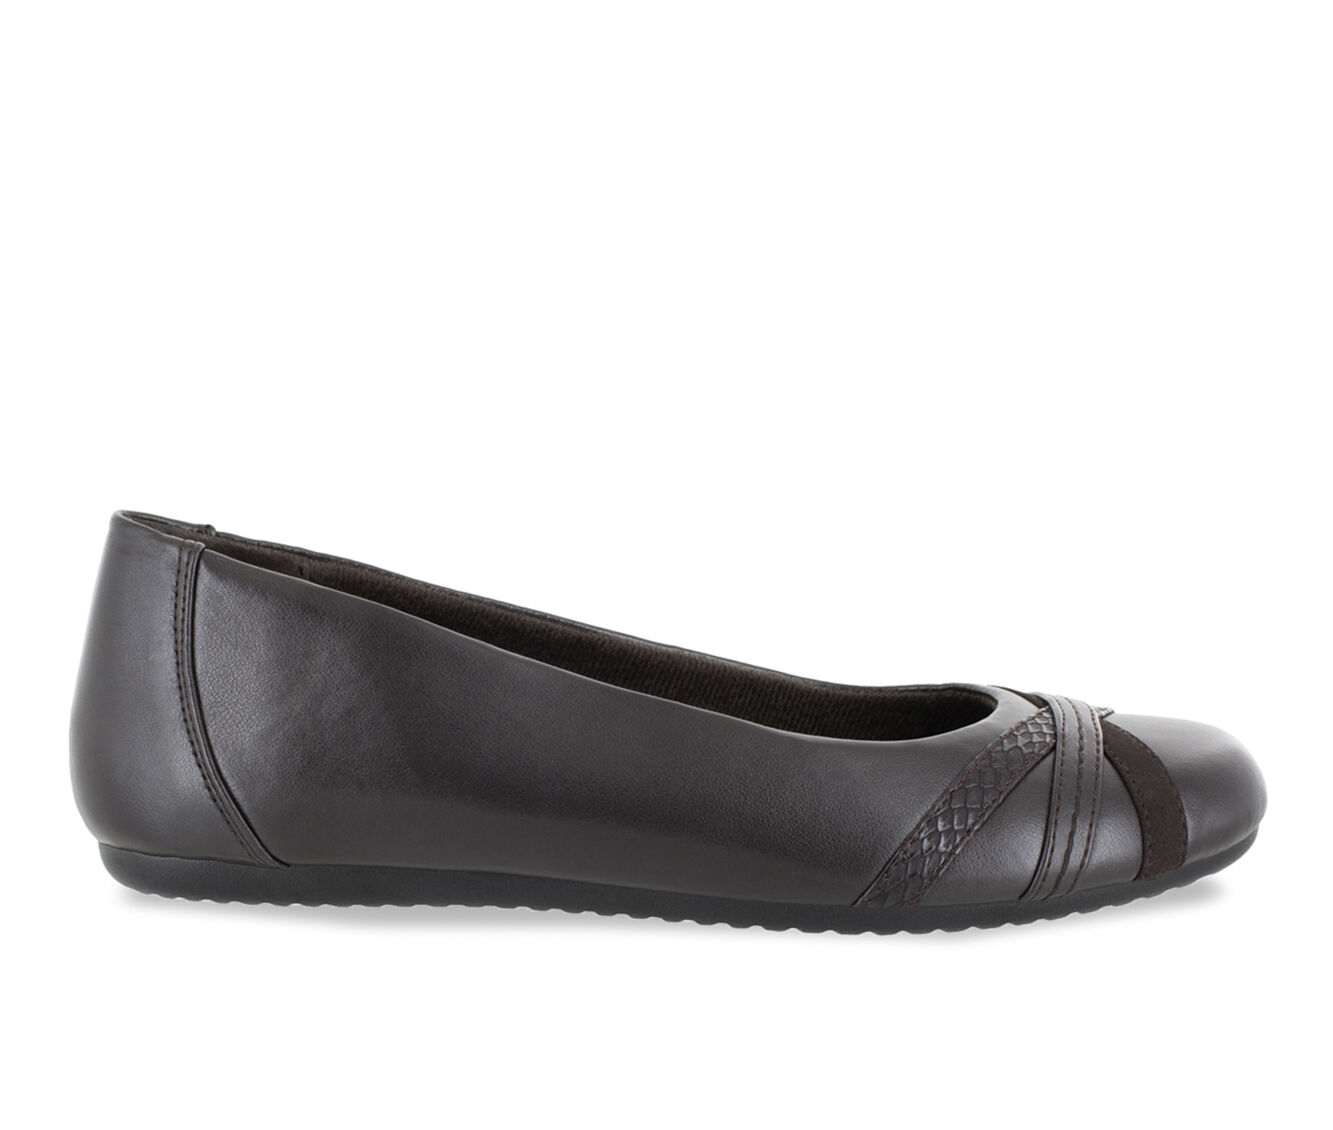 best price on Women's Easy Street Derry Shoes Brown